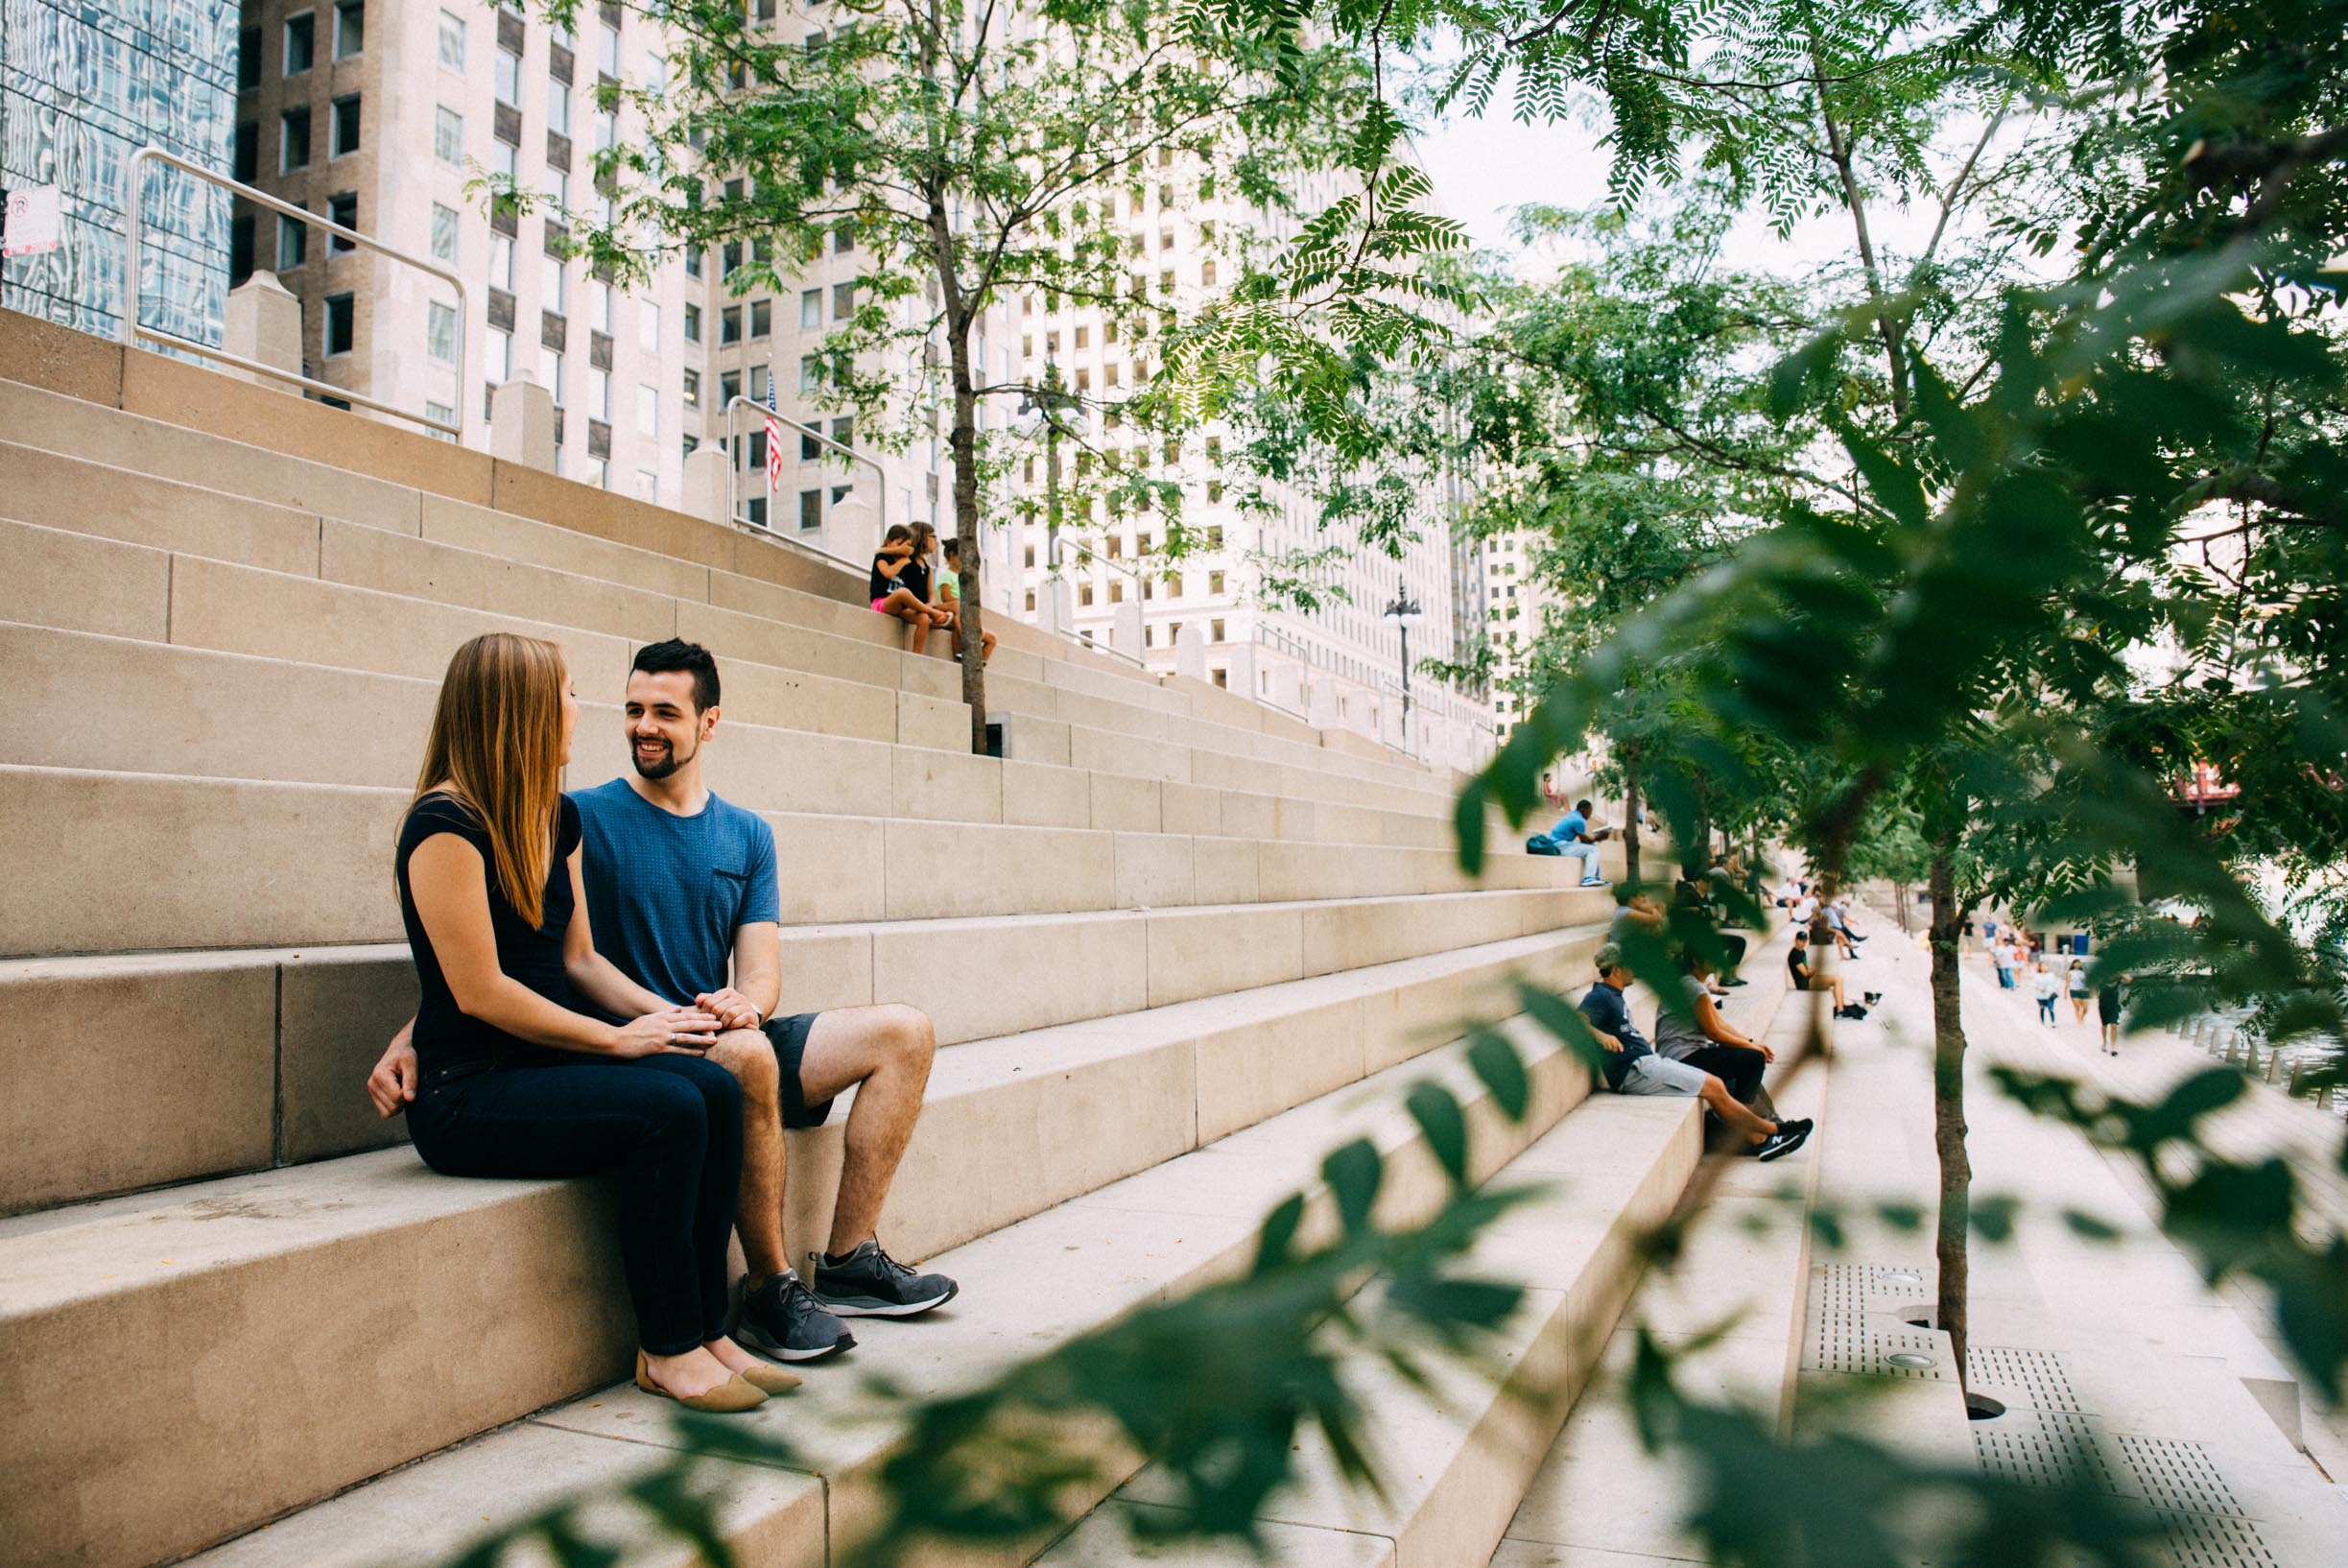 Ashley_Jacob_Chicago_Riverwalk_Couple_Portraits-3.jpg